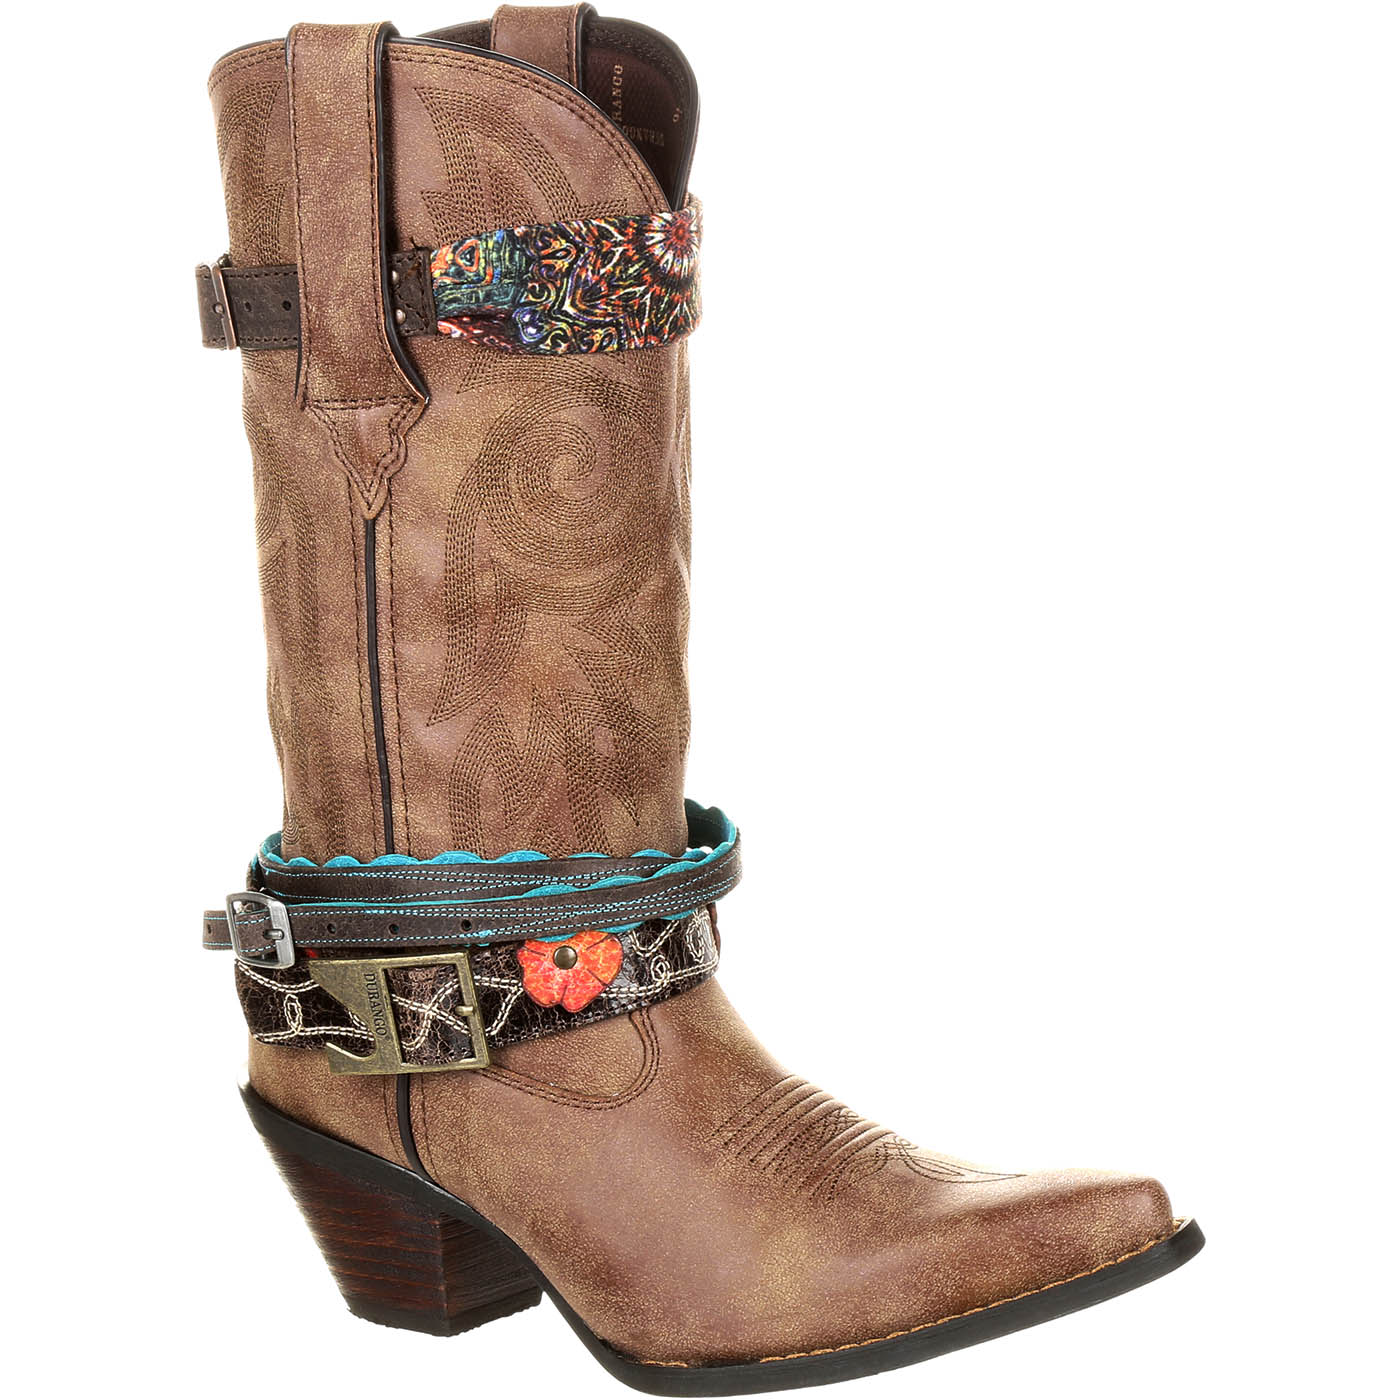 Crush by Durango Women's Accessorized Western Boot, , large